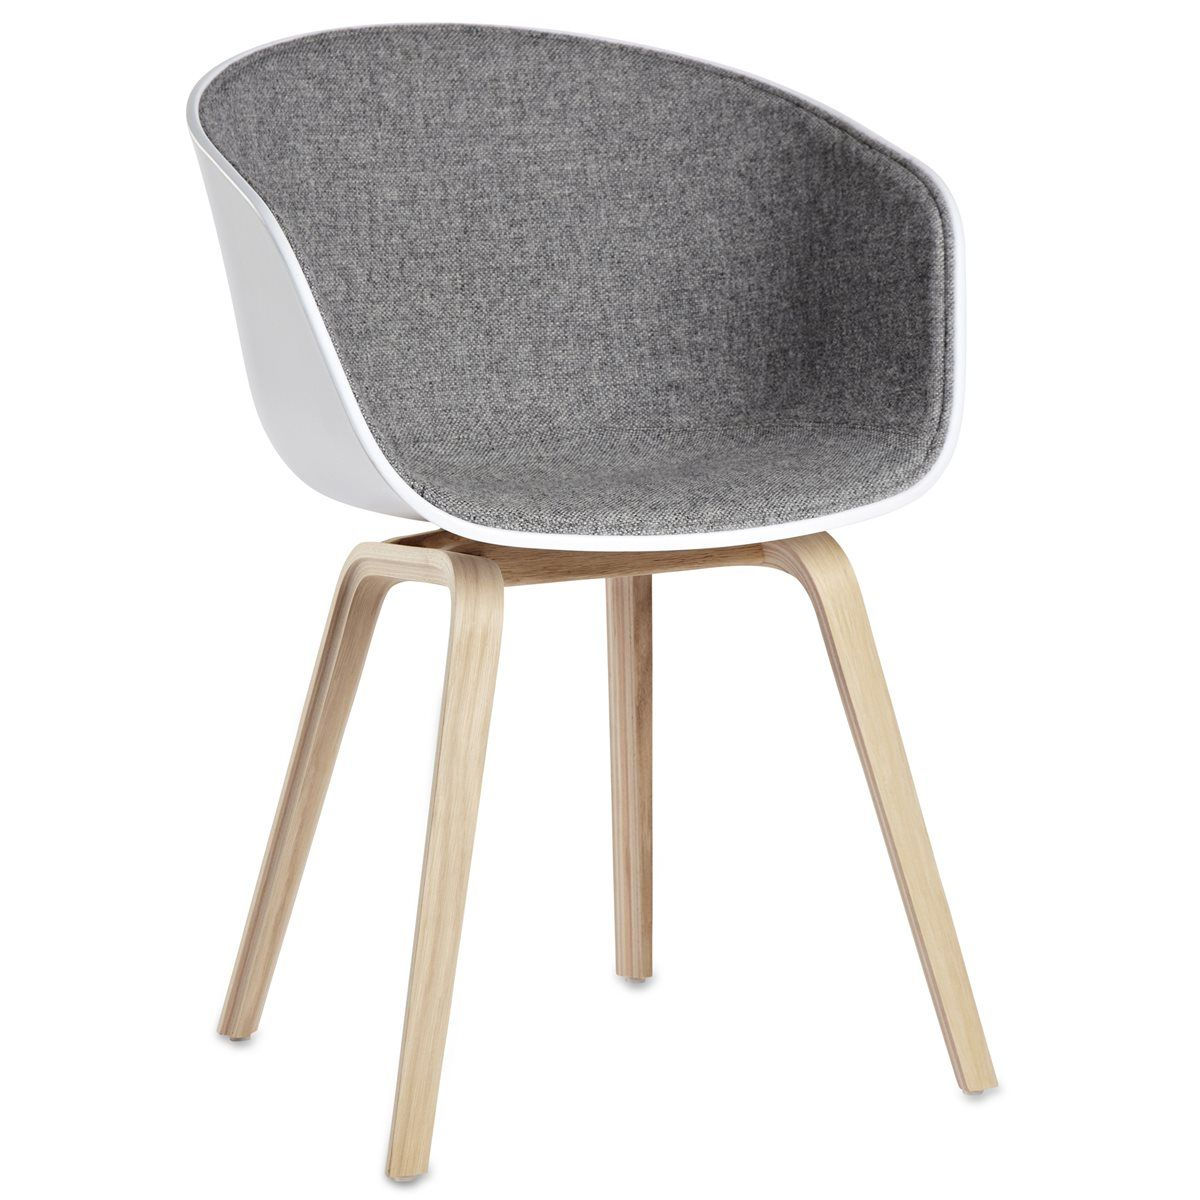 house een ware celebrity onder de designstoelen de hay about a chair aac22 is een van